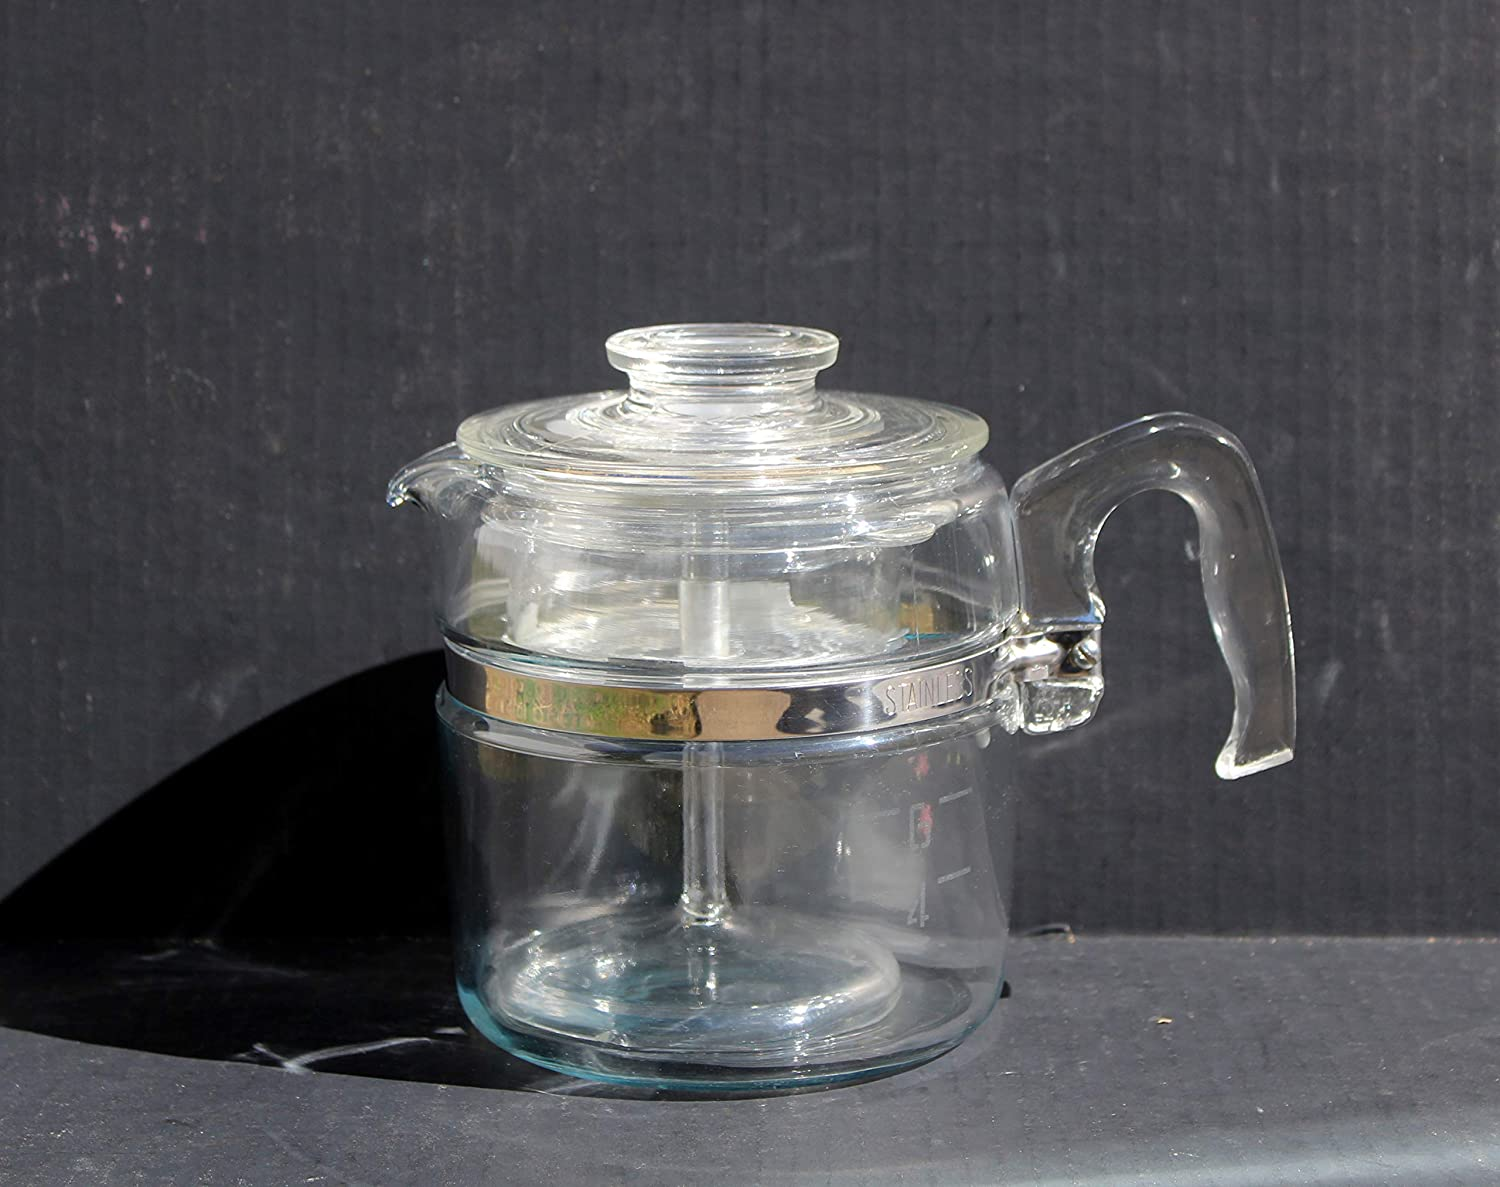 Vintage Pyrex 6 Cup Glass Flameware Coffee Percolator Number 7756 Stainless Steel Band